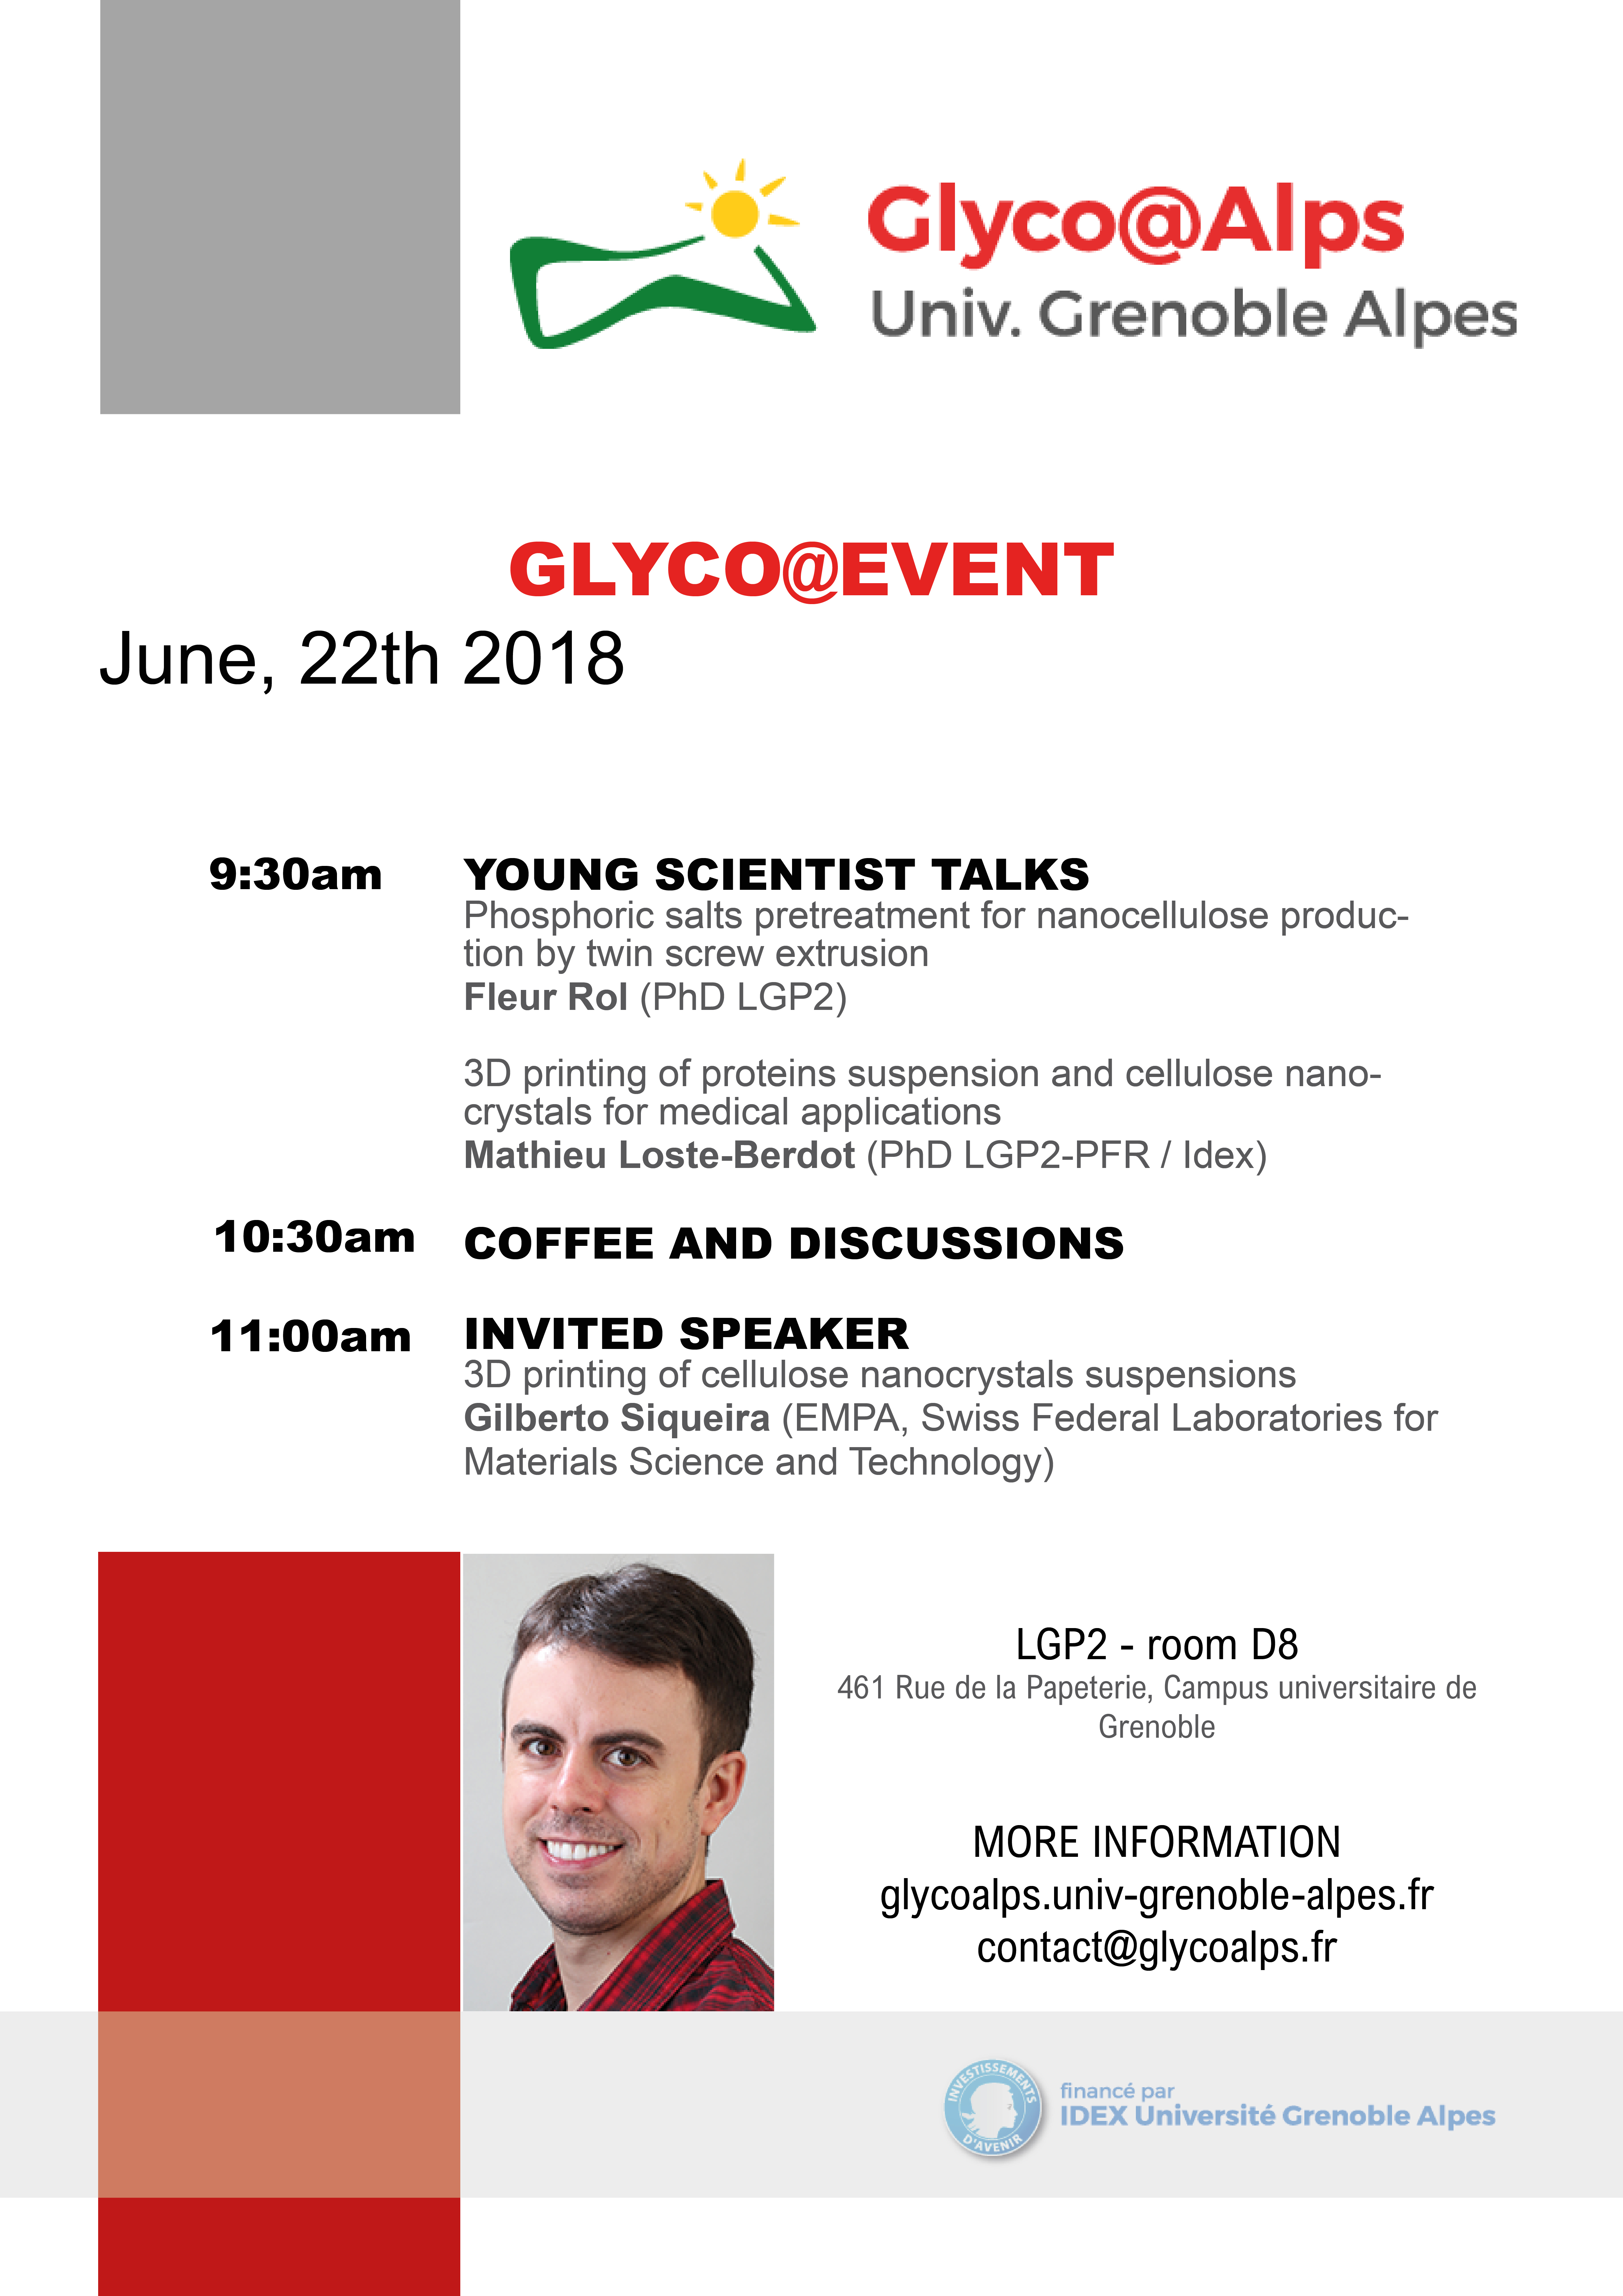 GlycoEvent 22 June